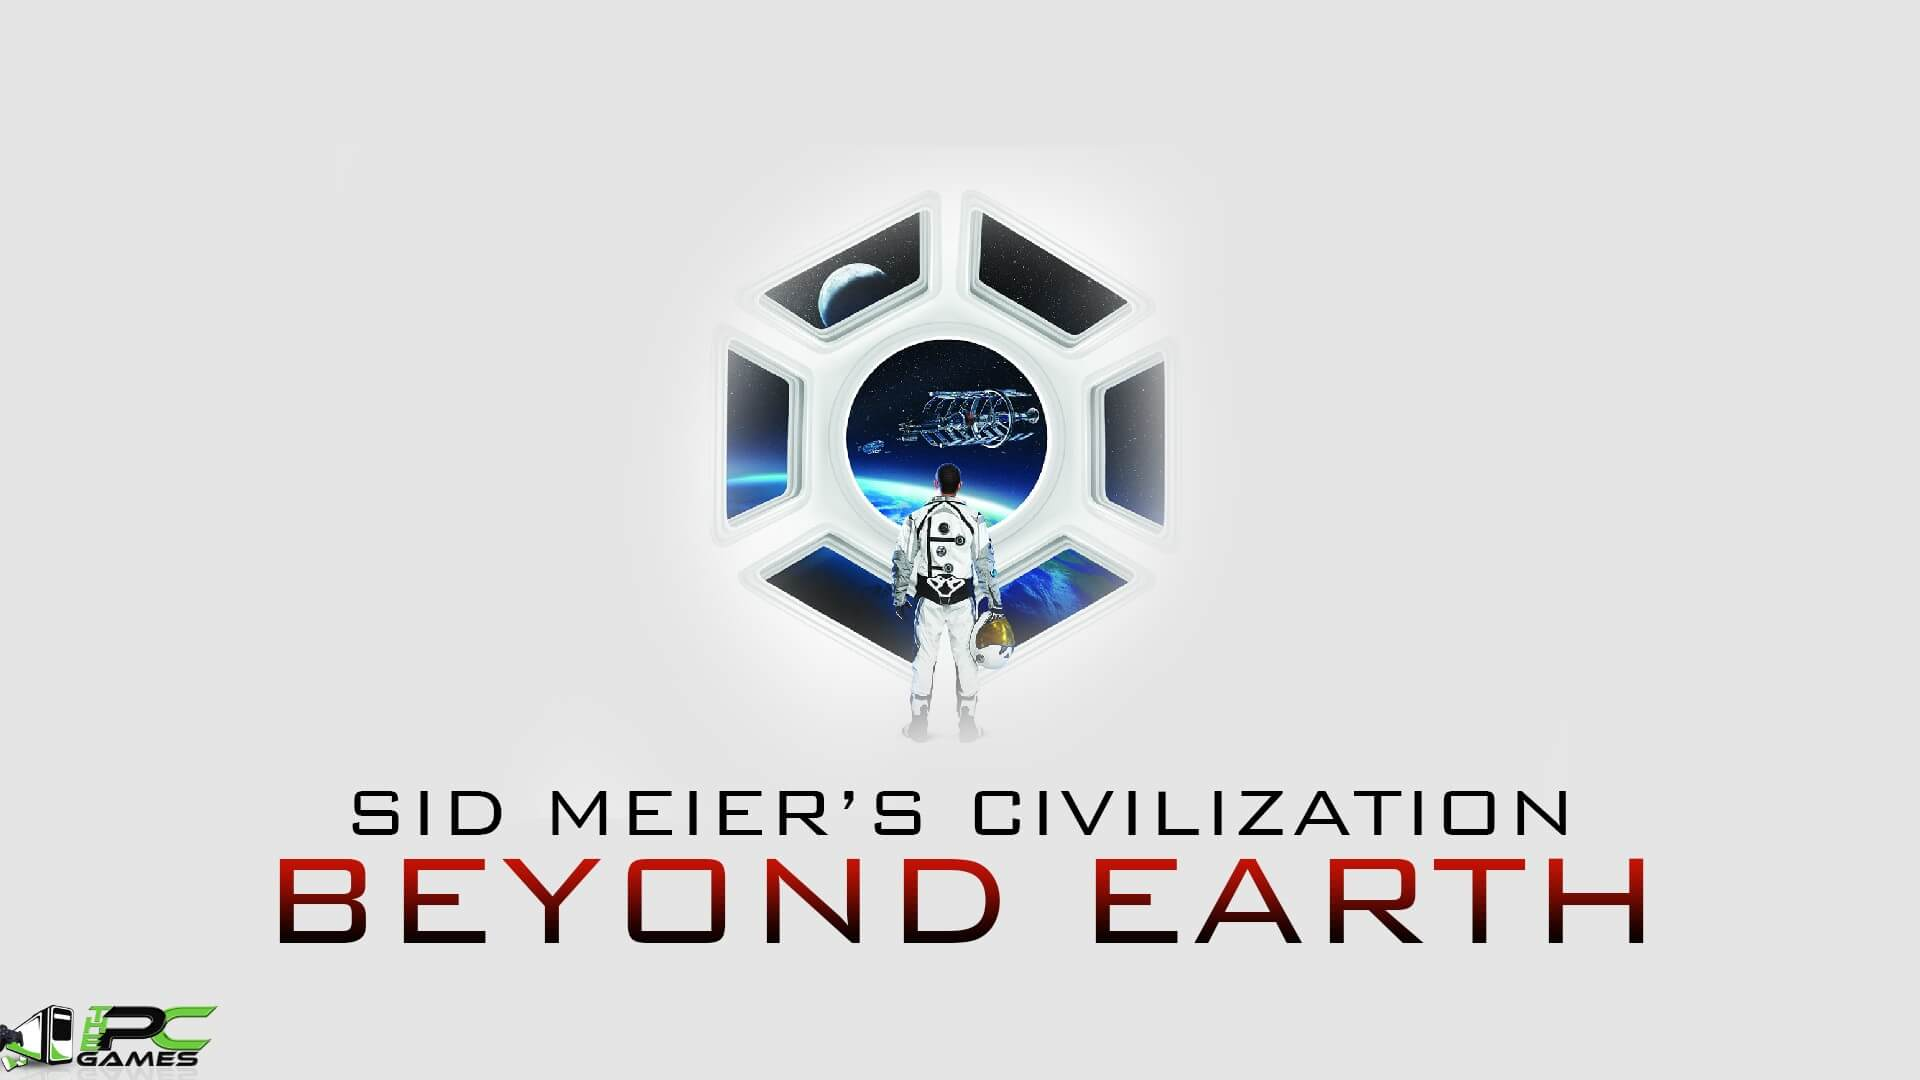 Sid Meier's Civilization Beyond Earth pc game free download